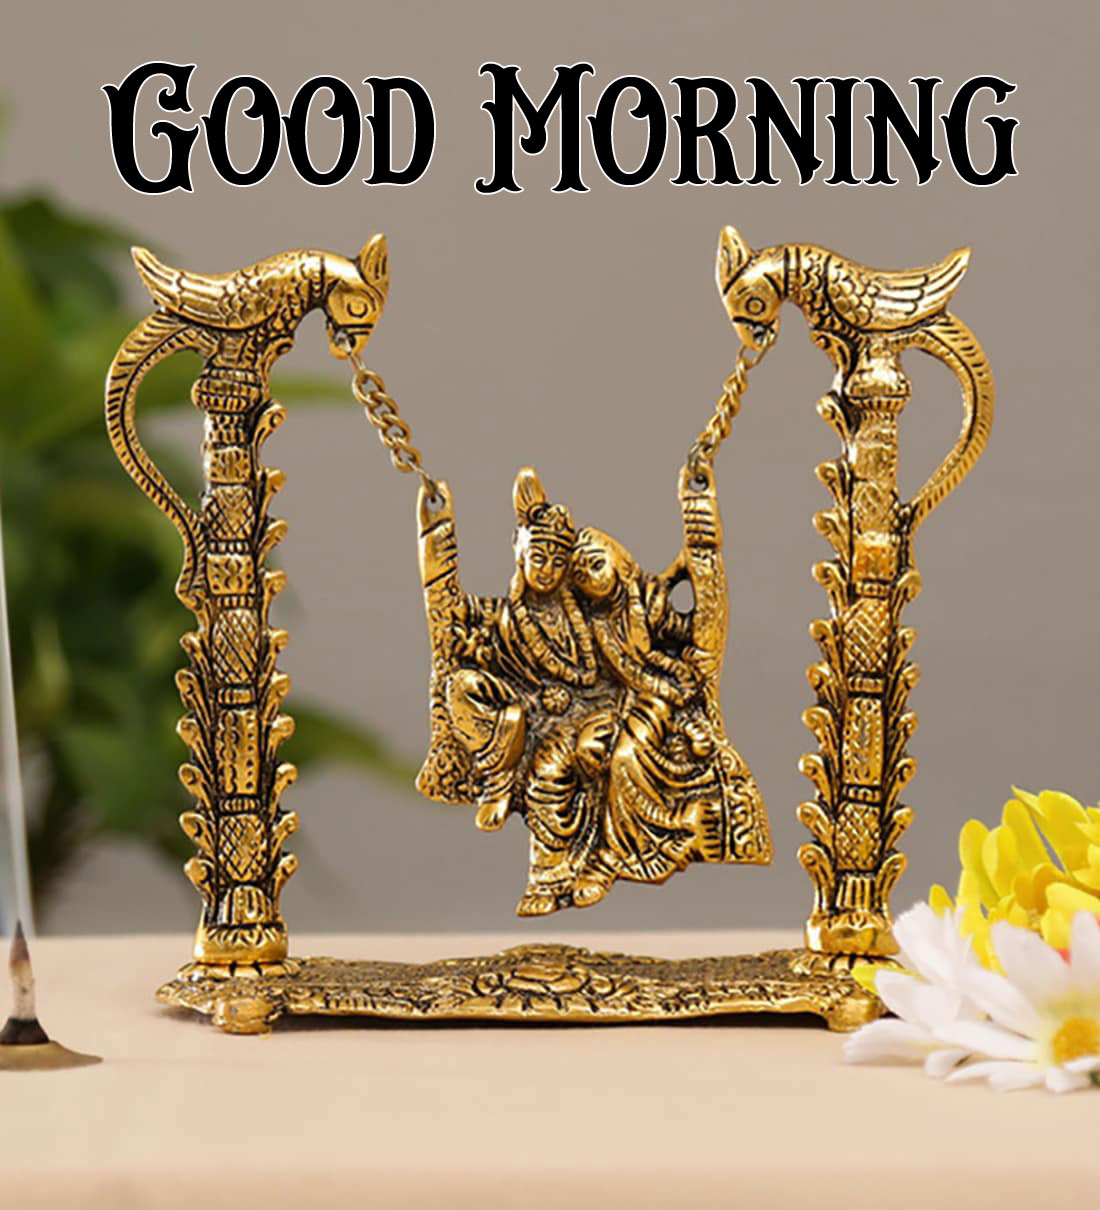 Latest Radha Krishna Good Morning Images pictures for status